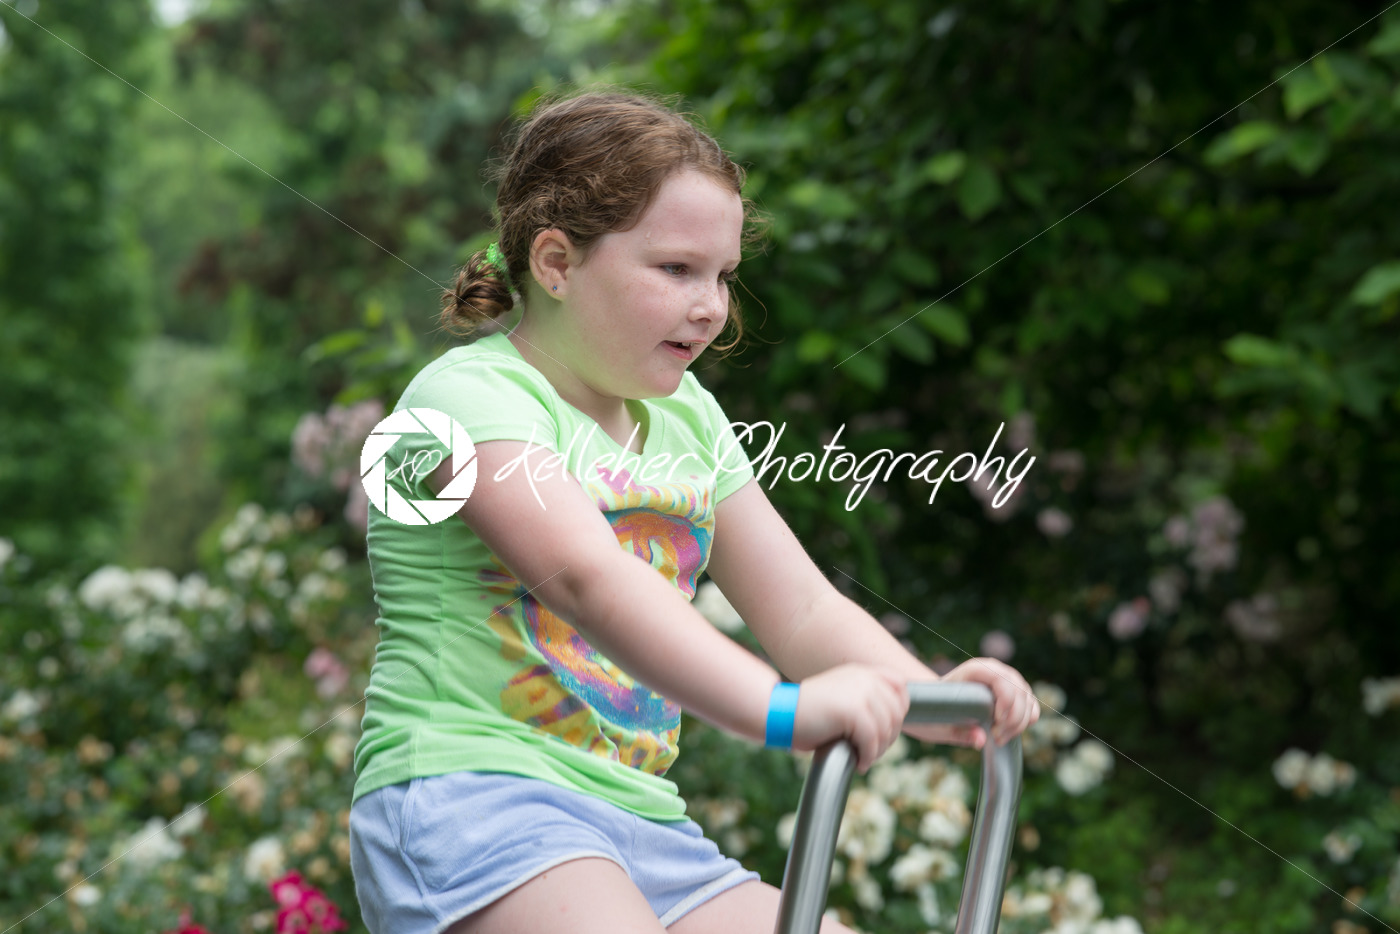 Young girl sat on ride in park - Kelleher Photography Store